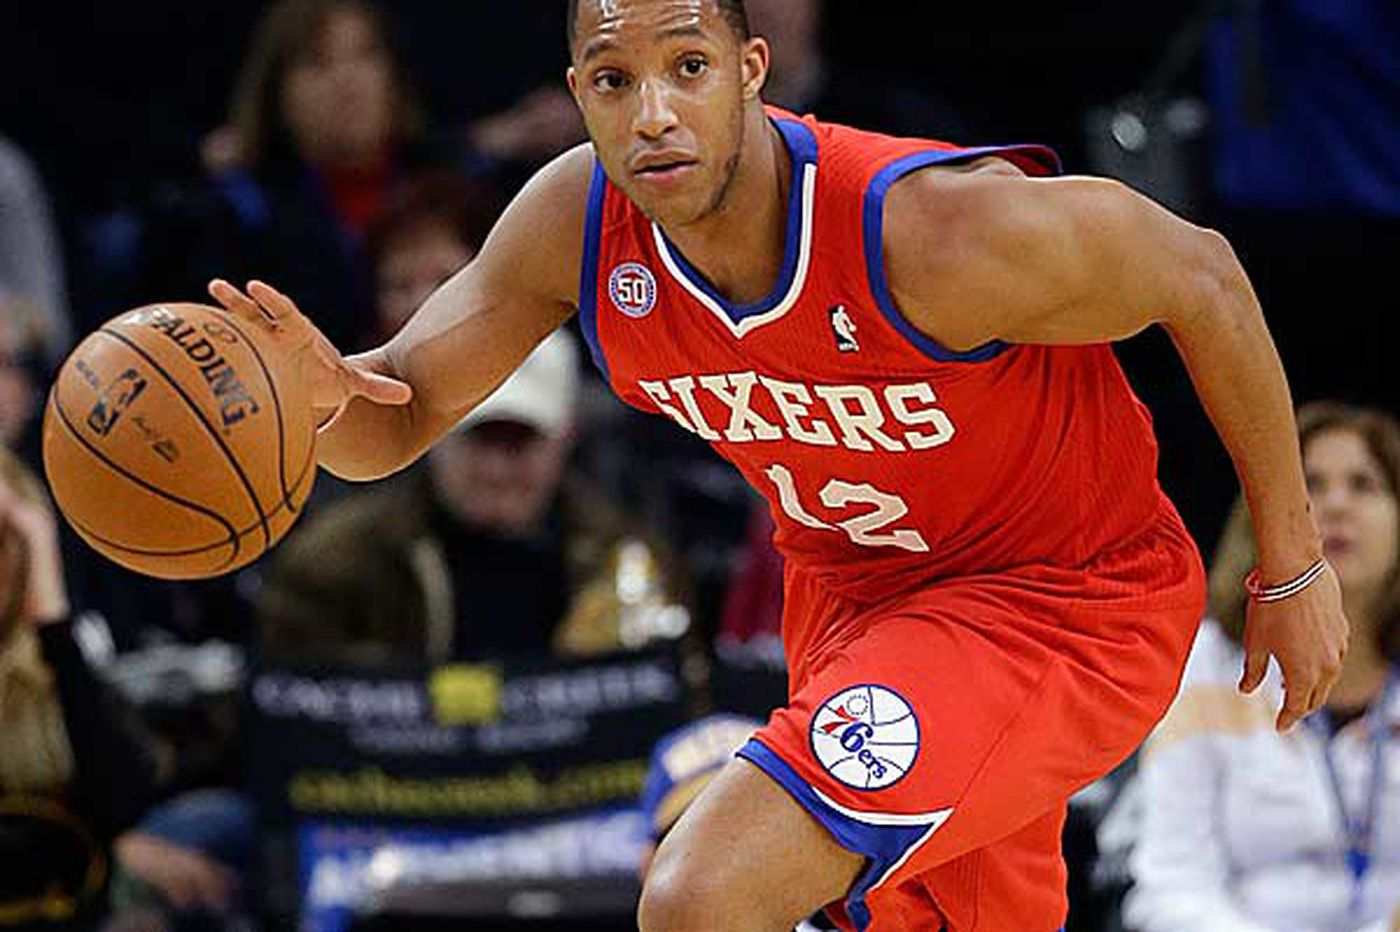 Sixers Notes: Sixers, Turner headed in different directions